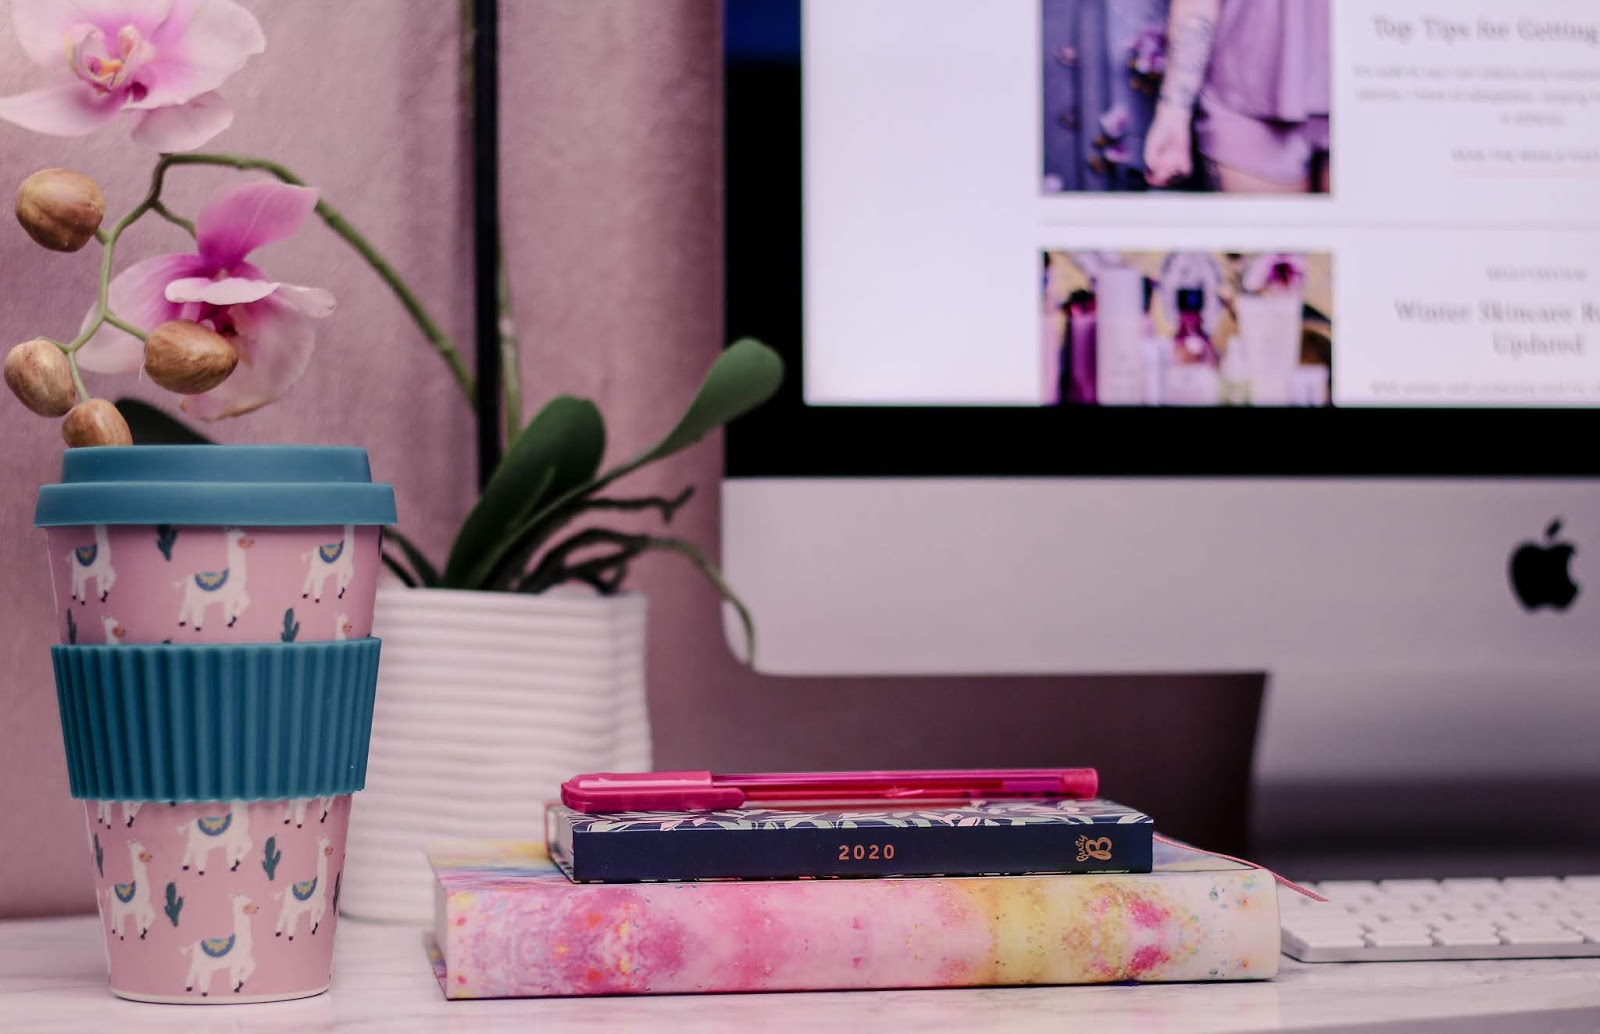 Photo of a pink and blue travel coffee mug, pink notebook, 2020 diary and pink pen sitting on a white marble computer desk with a pink orchid and iMac blurred in the background.